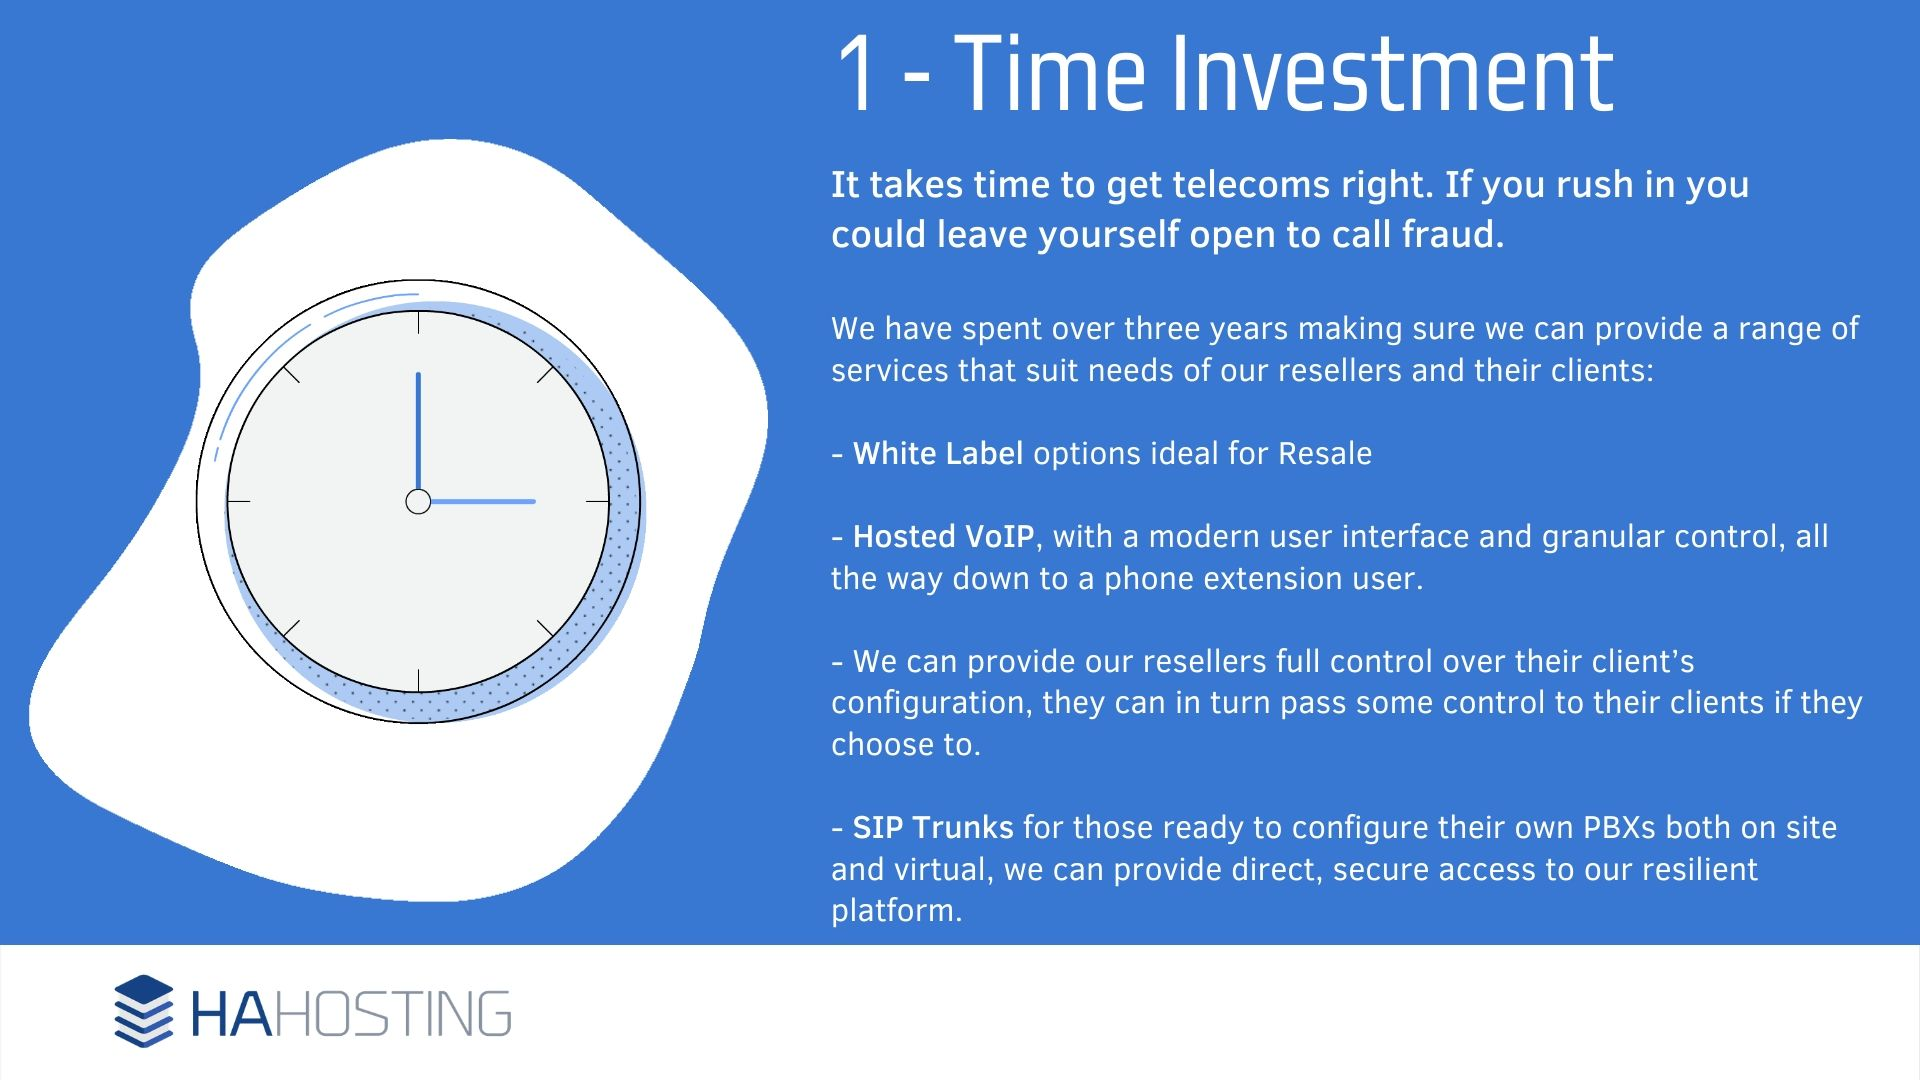 Time Investment - t takes time to get telecoms right. If you rush in you could leave yourself open to call fraud. We have spent over three years making sure we can provide a range of services that suit needs of our resellers and their clients: - White Label options ideal for Resale - Hosted VoIP, with a modern user interface and granular control, all the way down to a phone extension user. - We can provide our resellers full control over their client's configuration, they can in turn pass some control to their clients if they choose to. - SIP Trunks for those ready to configure their own PBXs both on site and virtual, we can provide direct, secure access to our resilient platform.